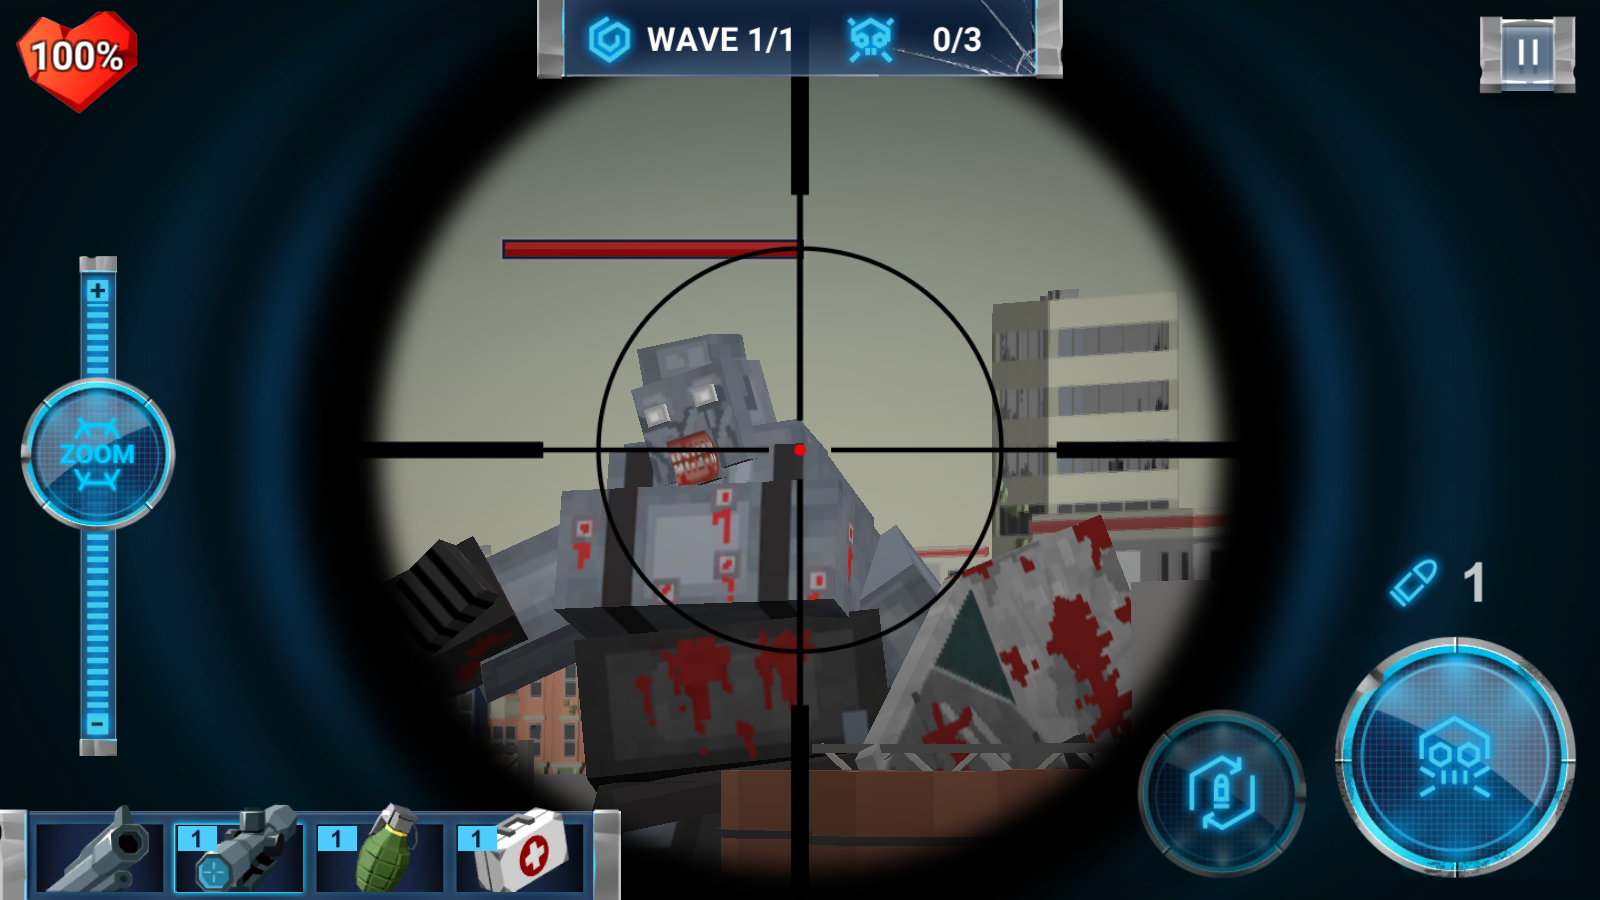 The walking zombie: Dead city Screenshot 3